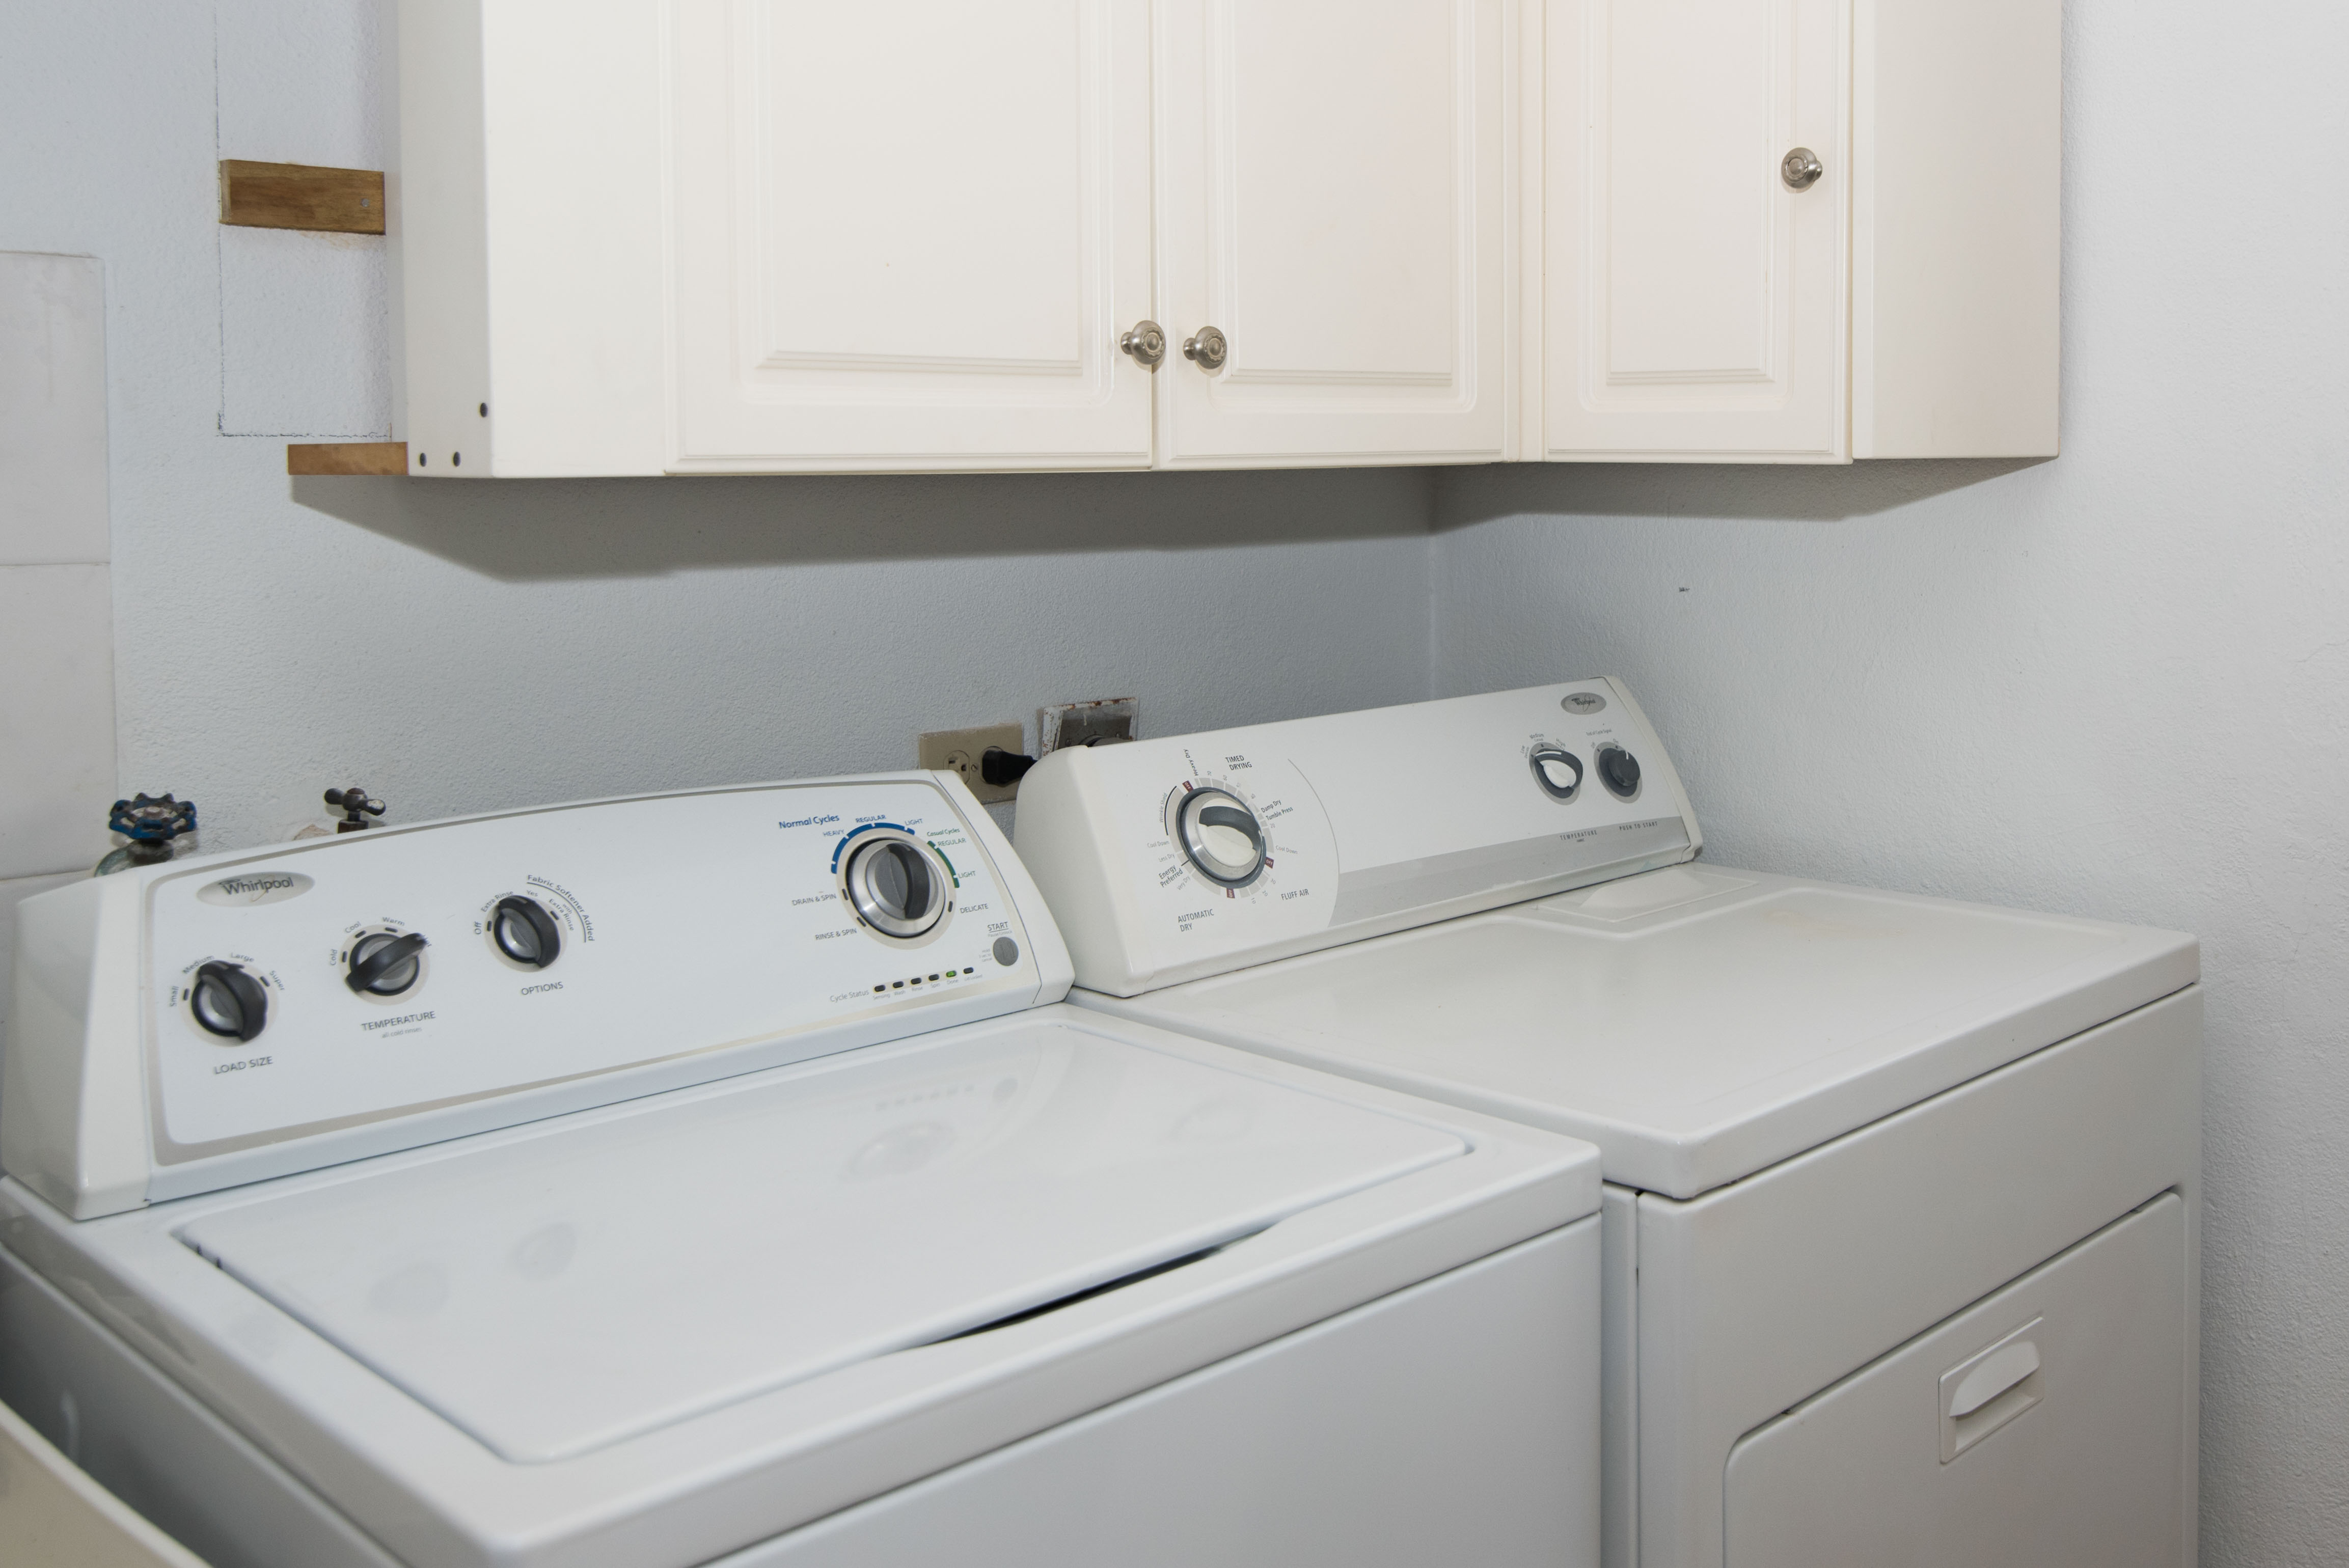 Blue Vista Washer/Dryer